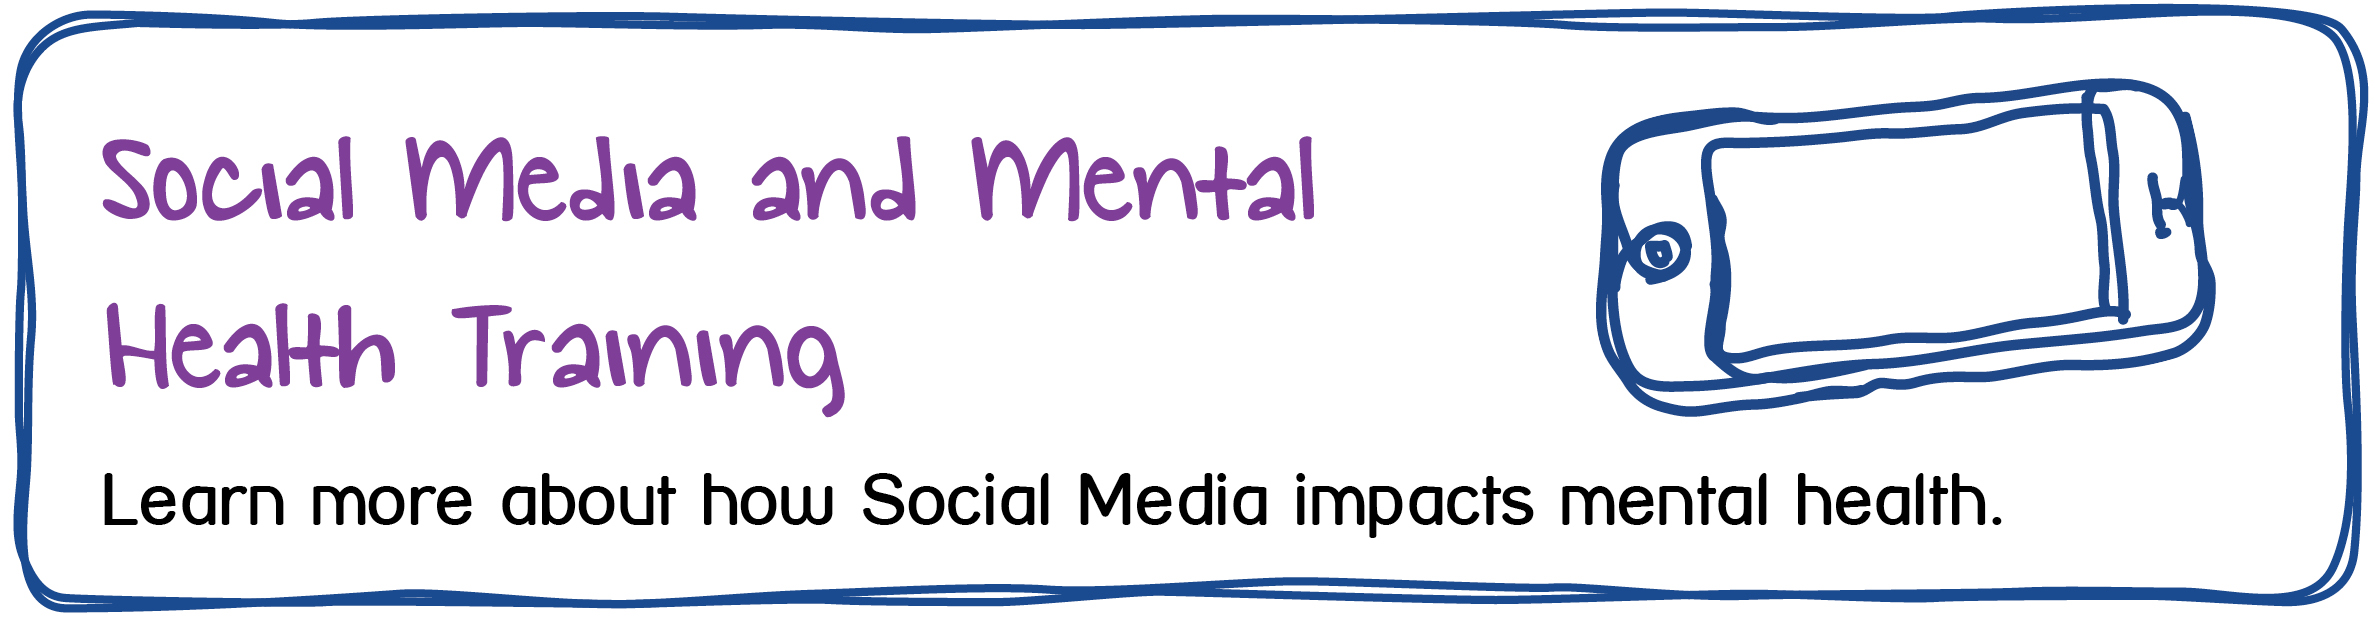 Social Media and Mental Health training. Learn more about how Social Media impacts mental health.